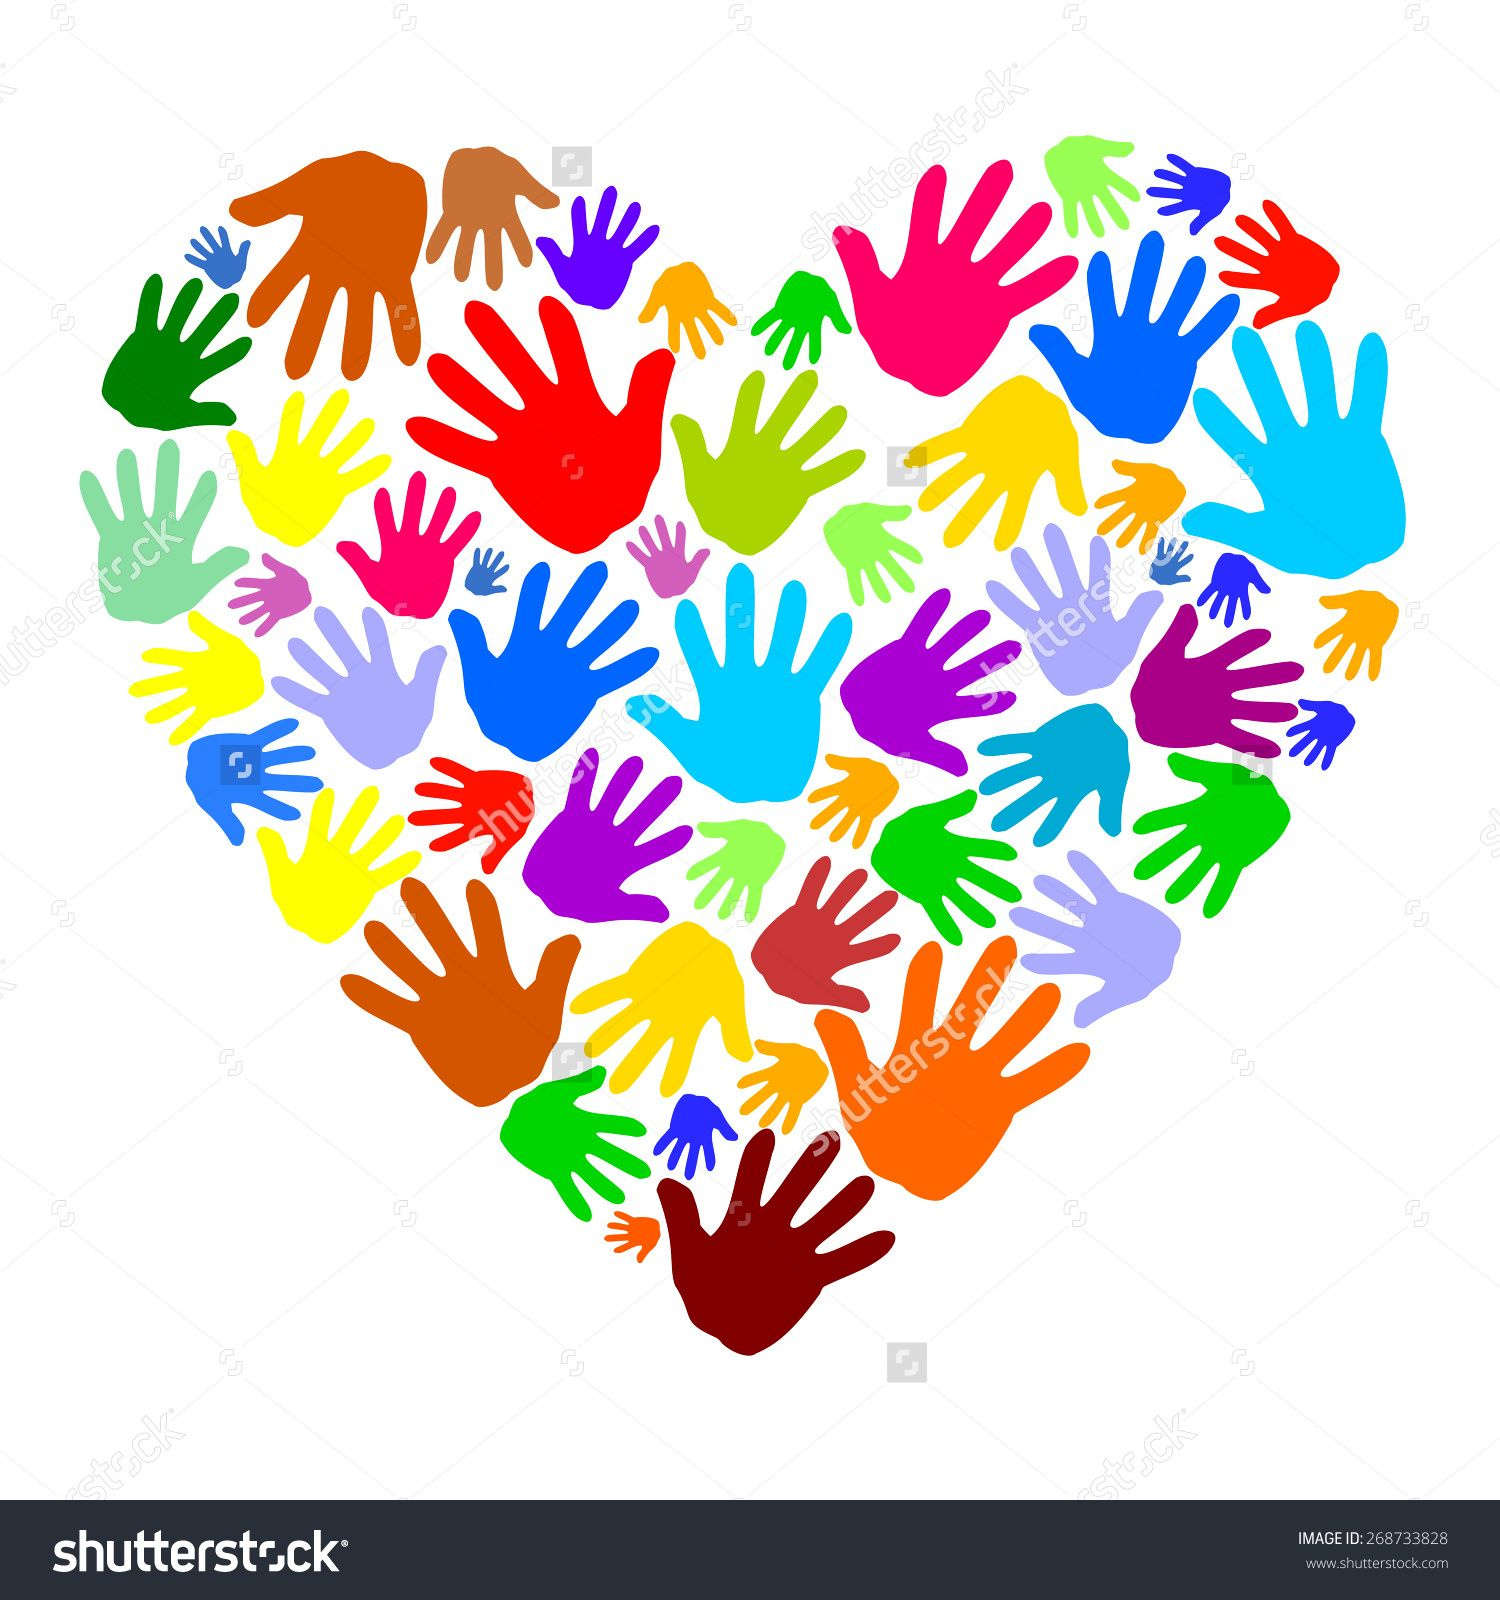 Handprint clipart heart, Handprint heart Transparent FREE.